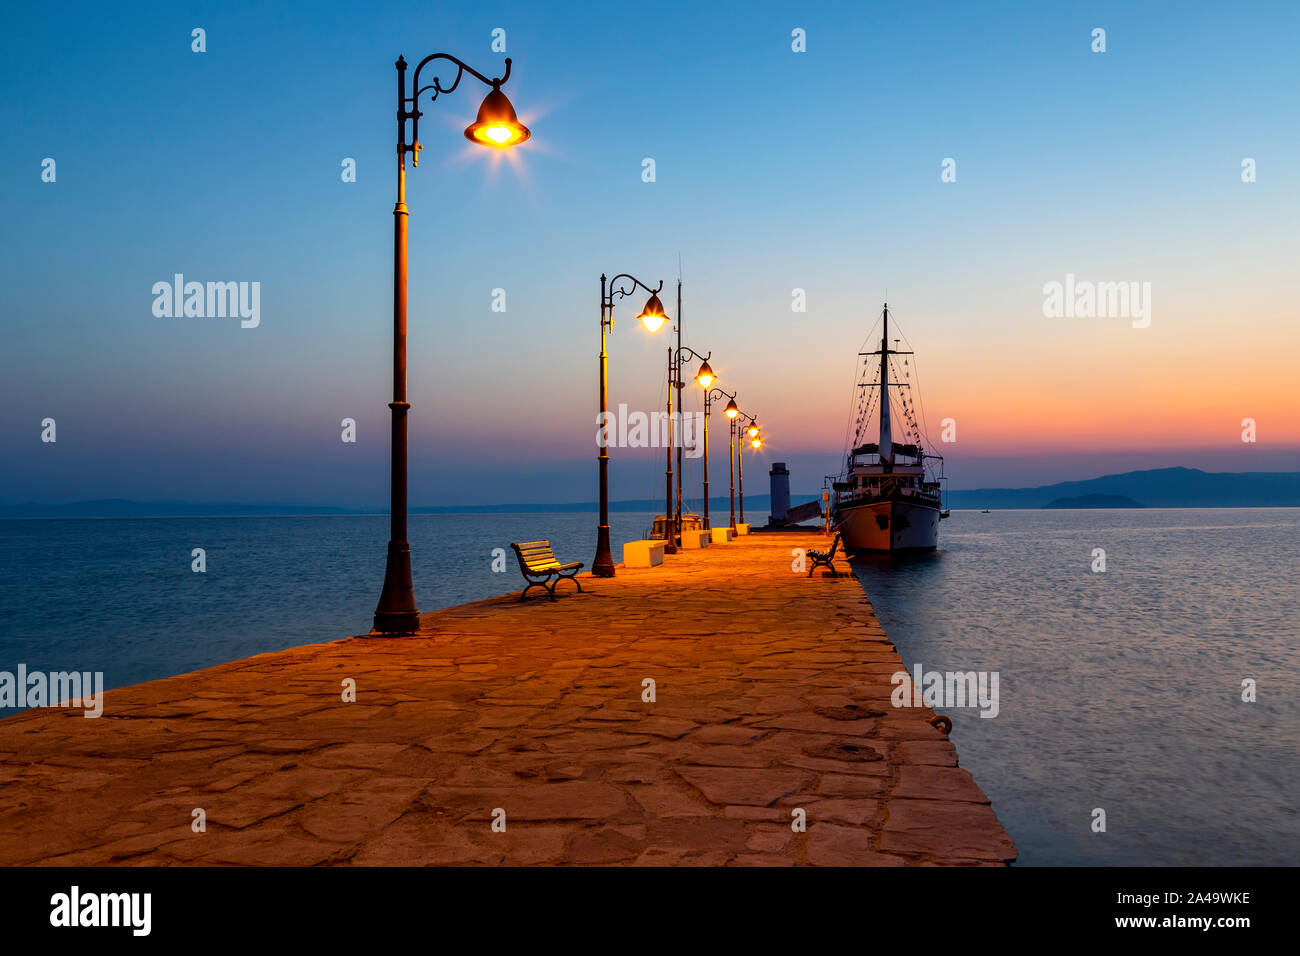 Wooden motor boat at sunrise, used for tourist trips on the sea, Pefkohori, Greece Stock Photo